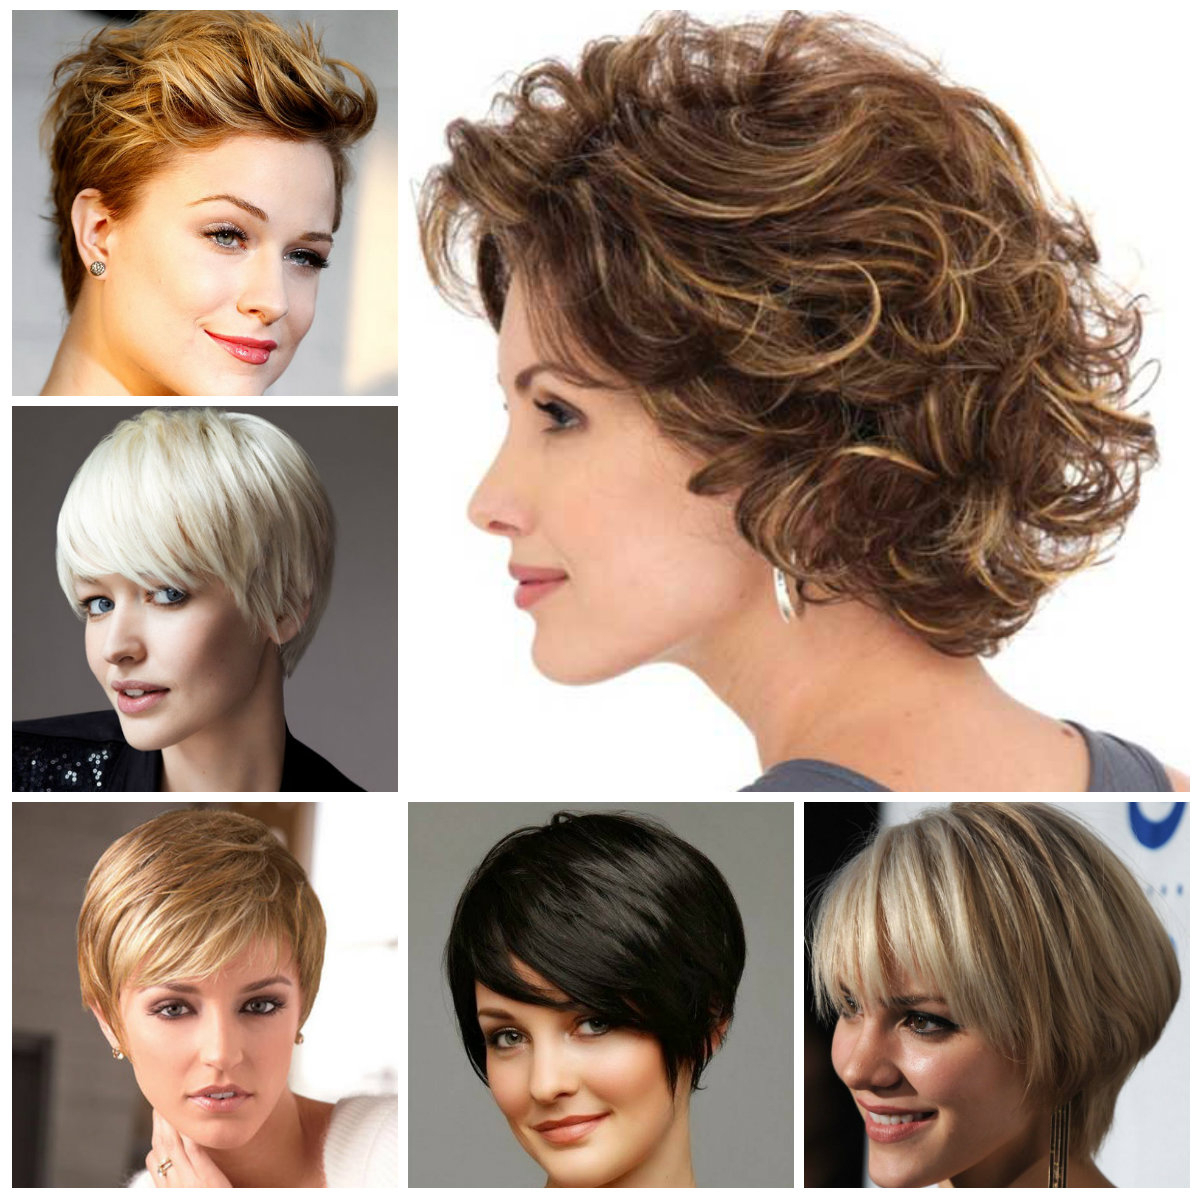 Short Layered Hairstyle Ideas For 2019 | Hairstyles For Women 2019 With Regard To Curly Golden Brown Pixie Hairstyles (Gallery 11 of 20)